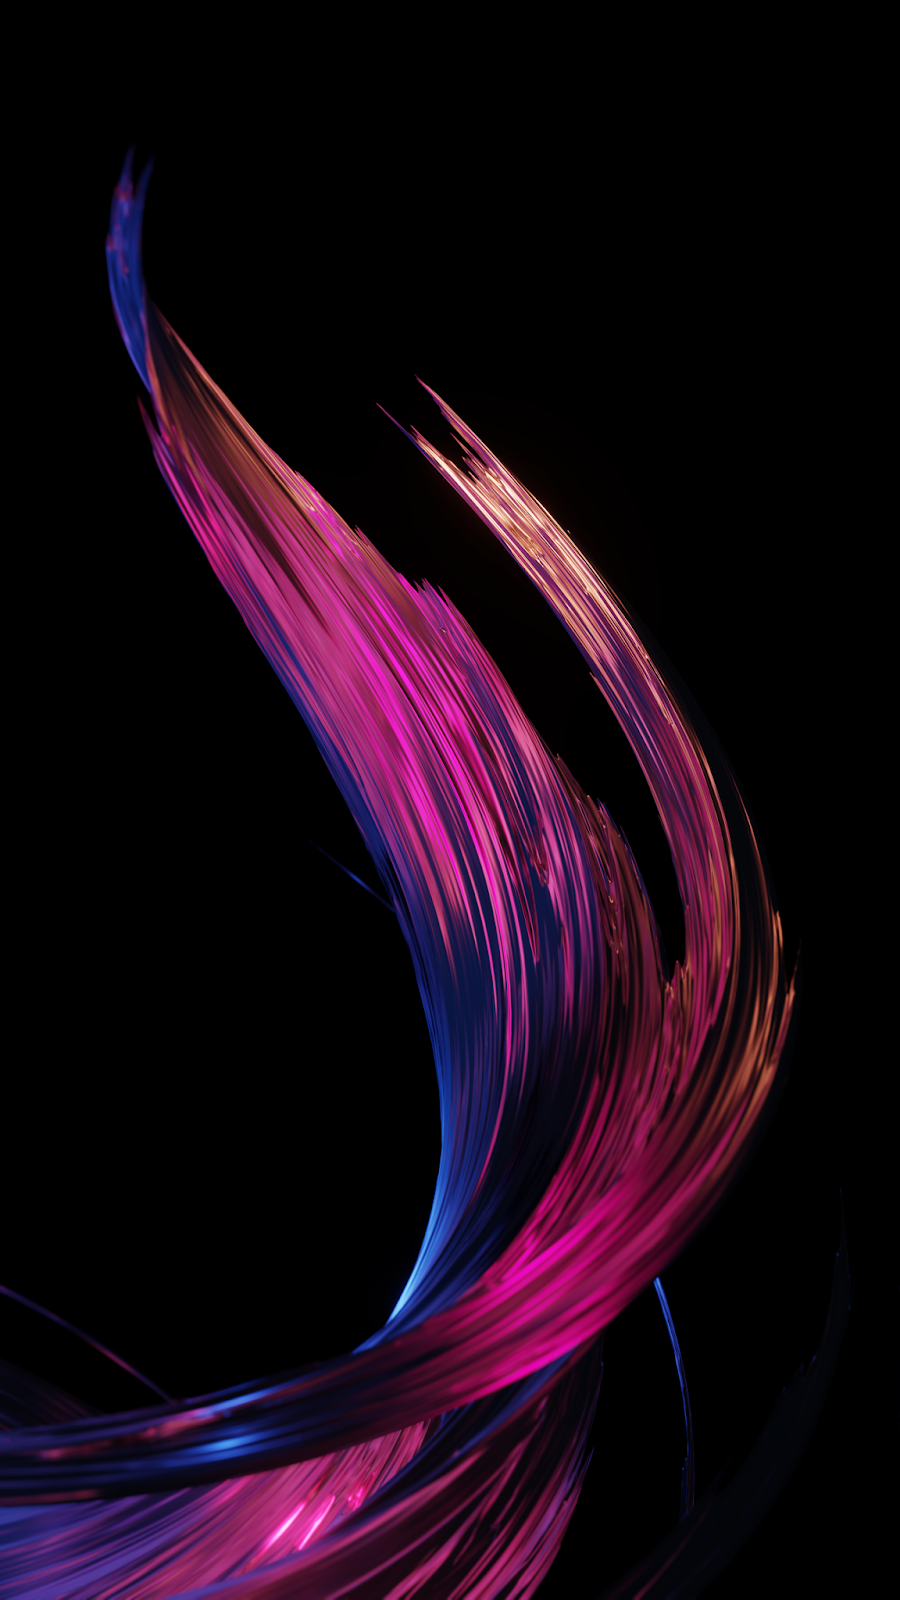 Wave [OC] [2160x3840] by jrw01